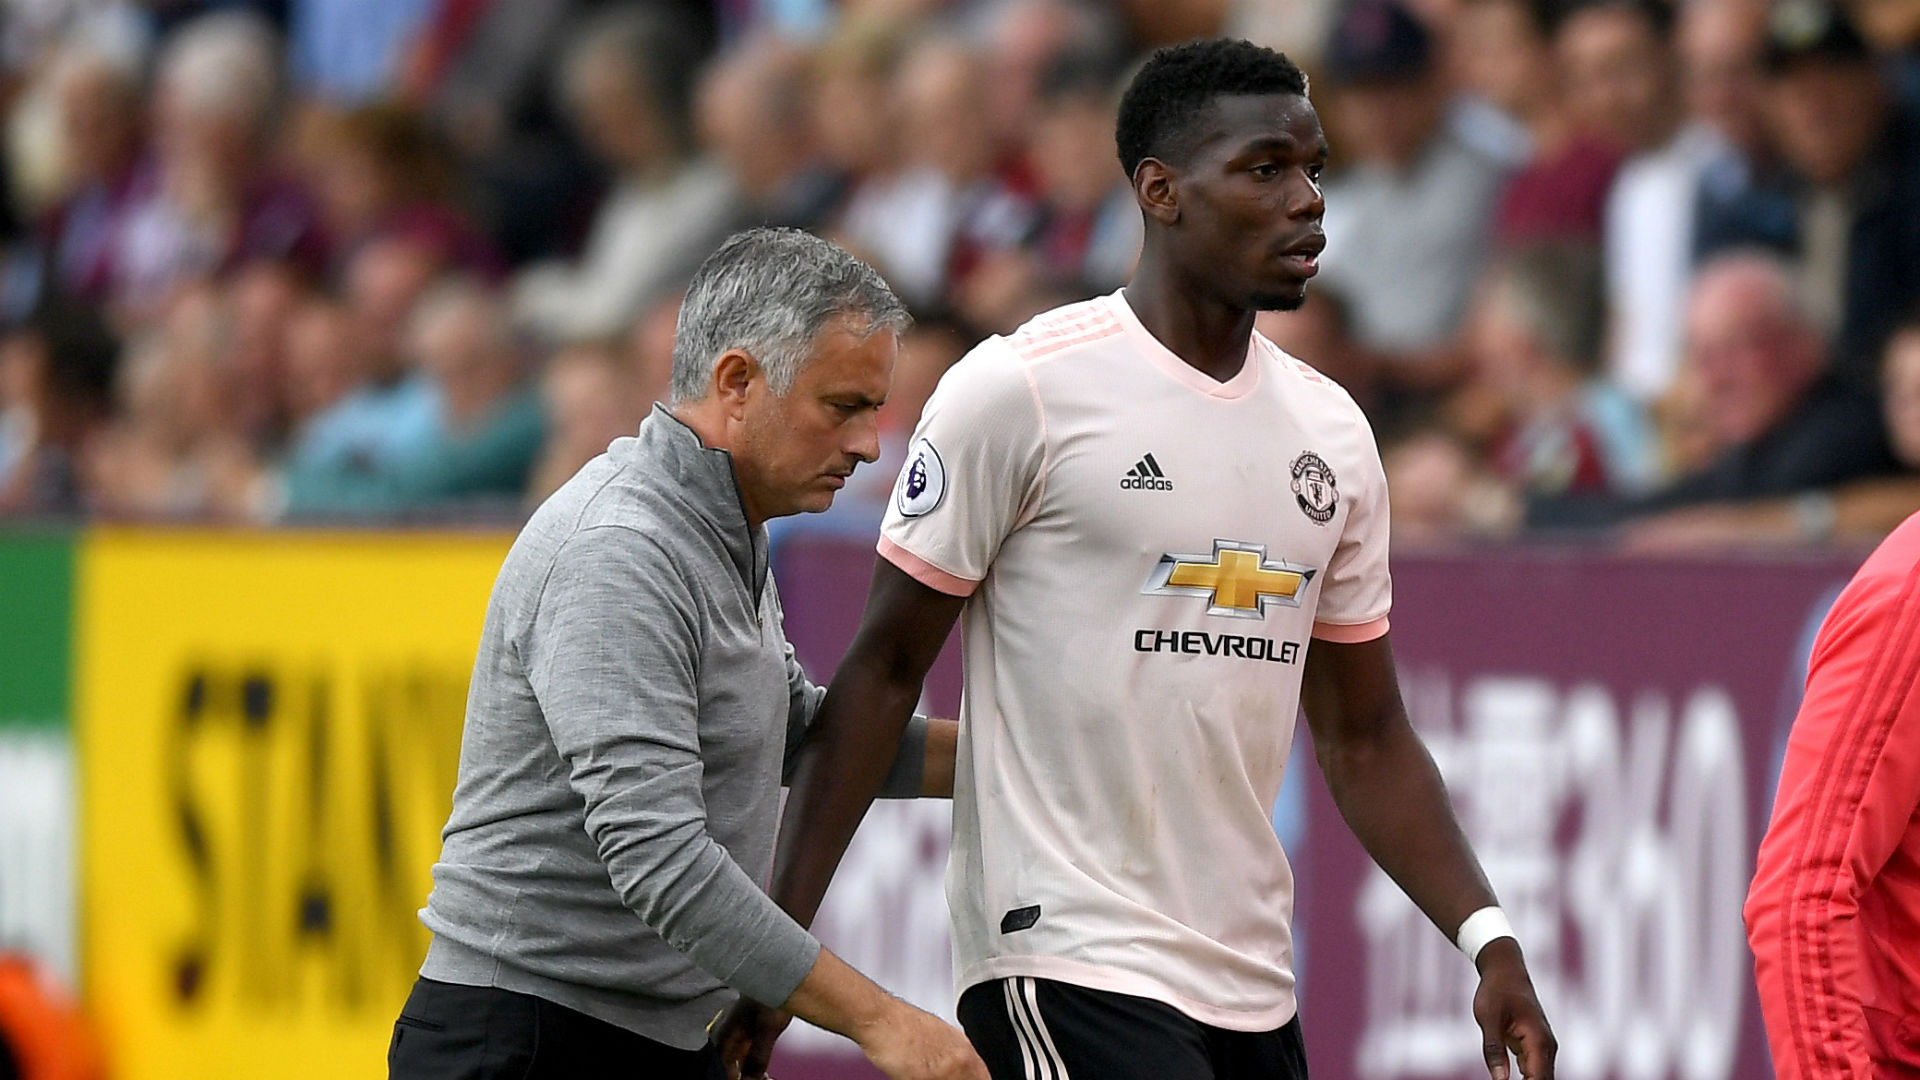 Mourinho 'couldn't care less' about Pogba comments over Man Utd relationship